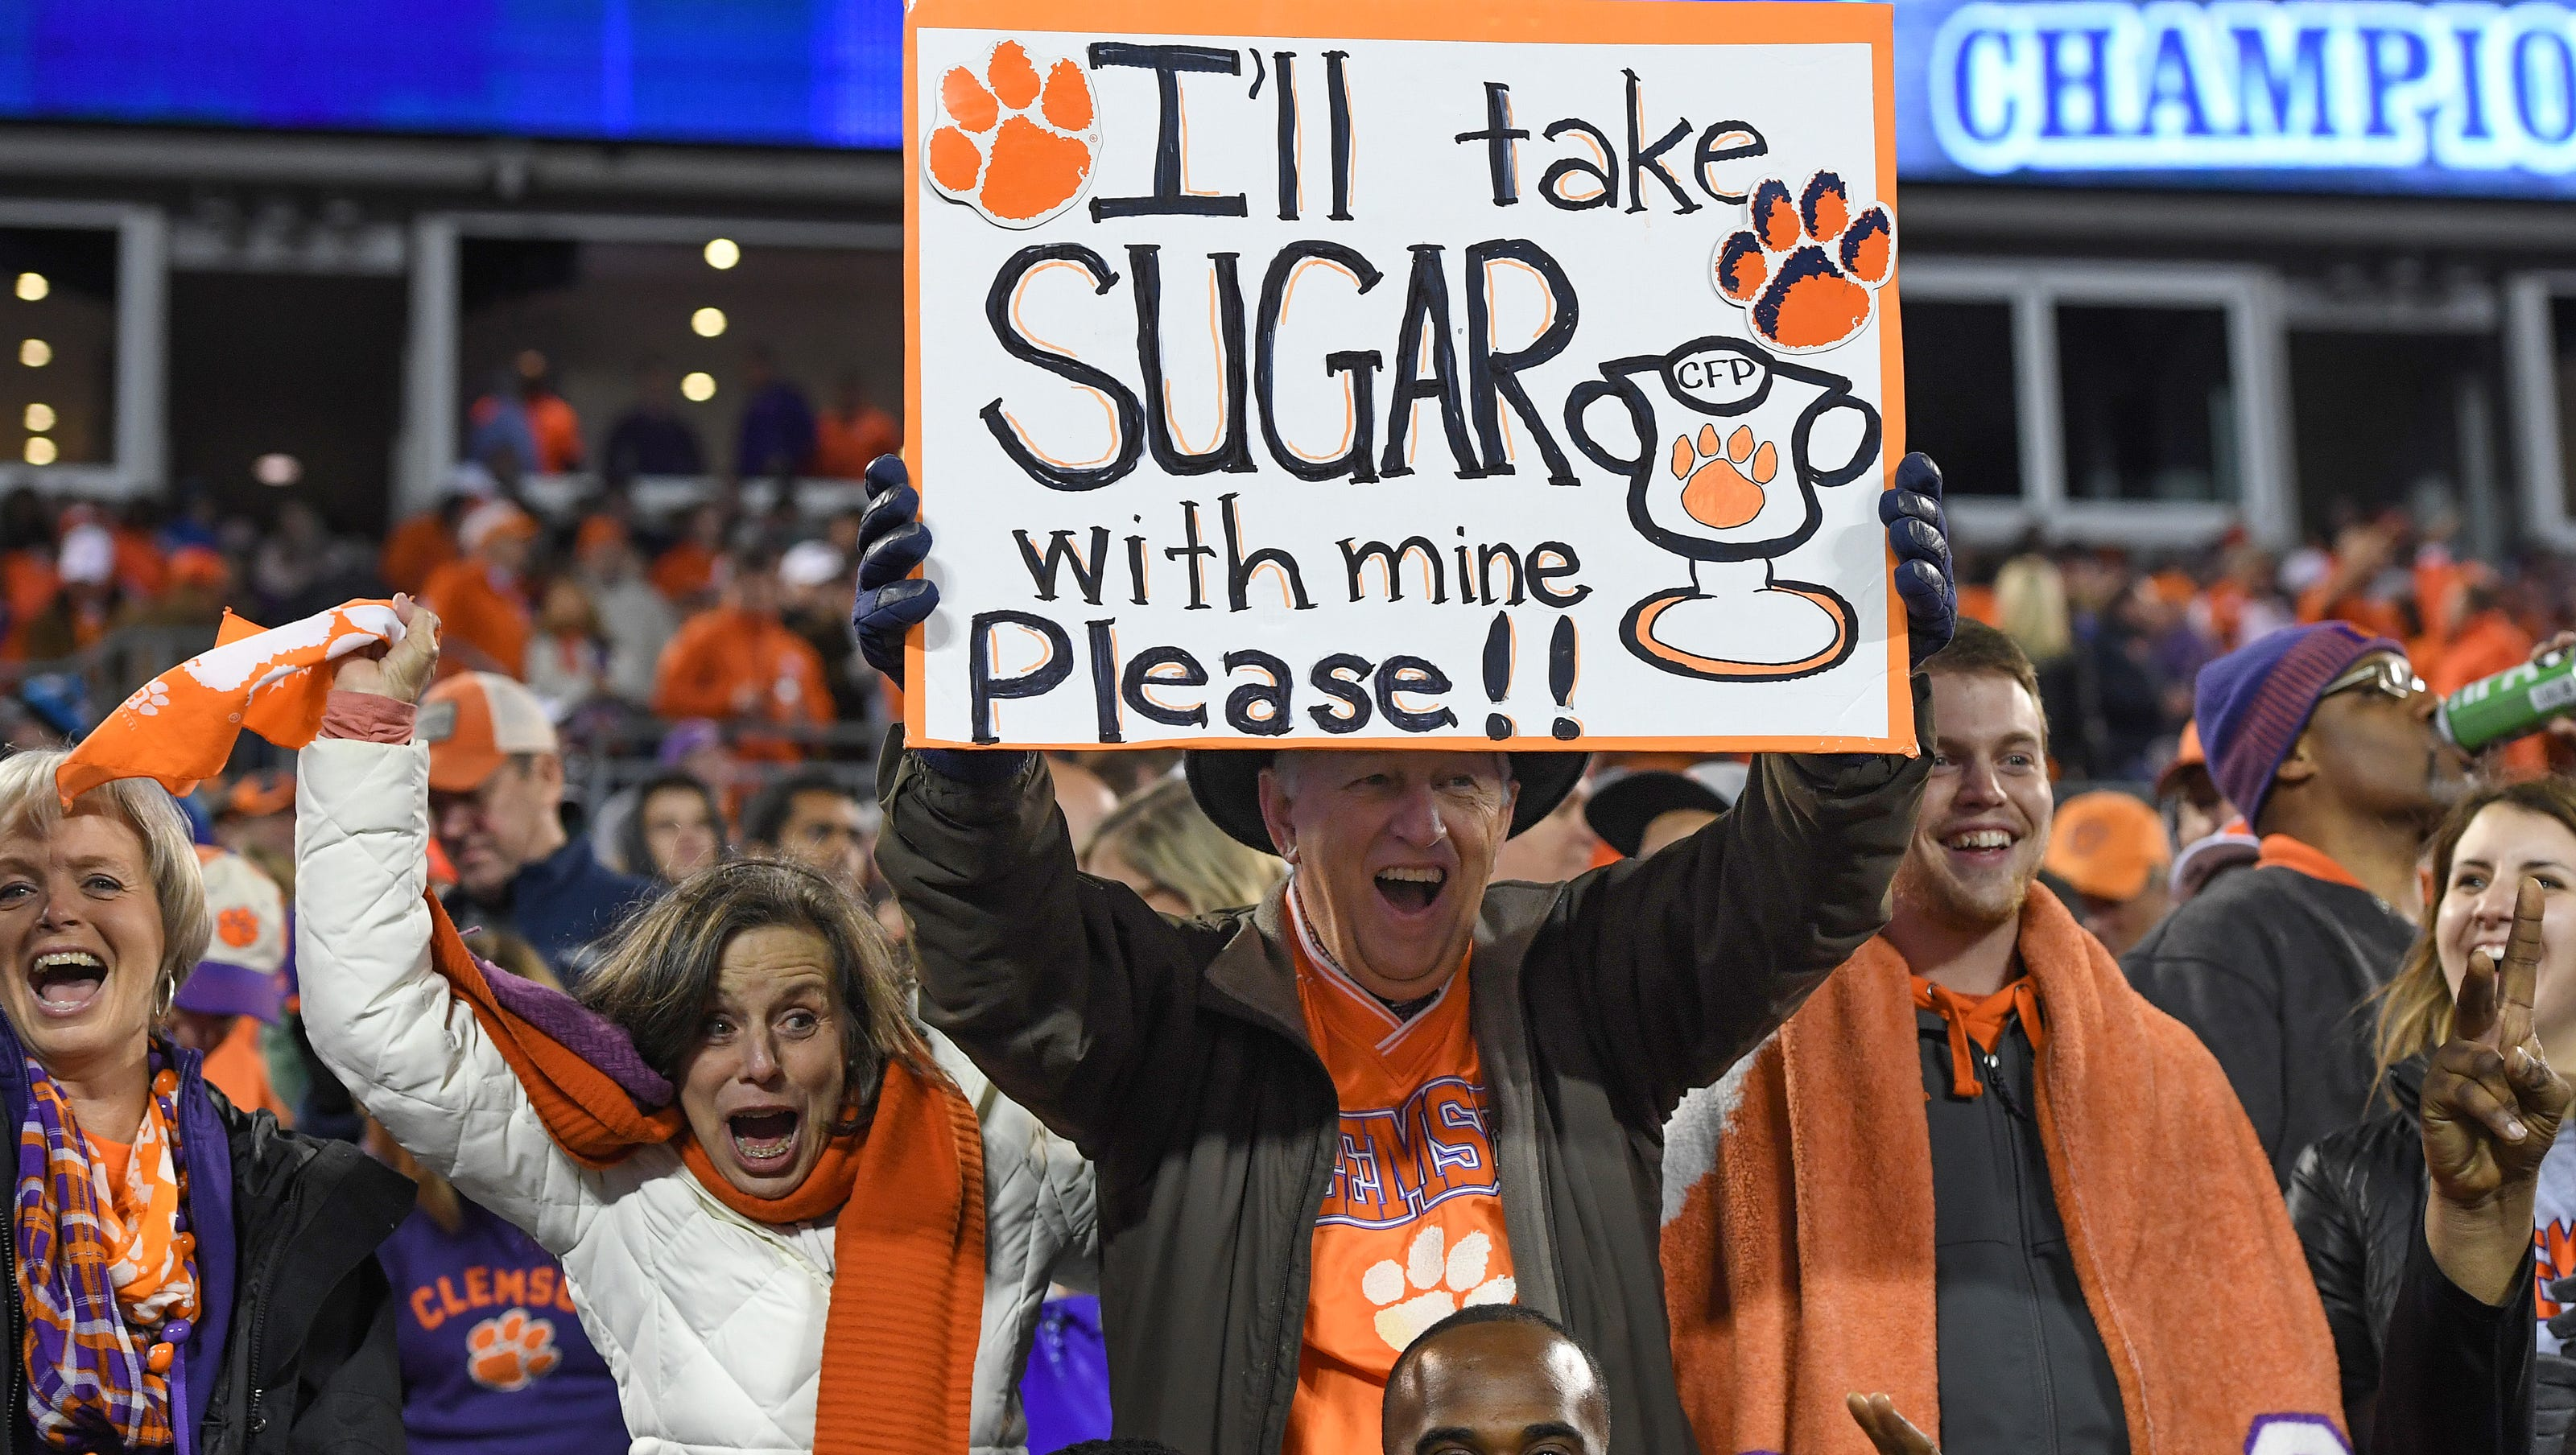 Clemson And Carolina Score >> Clemson students get second chance at Sugar Bowl against Alabama